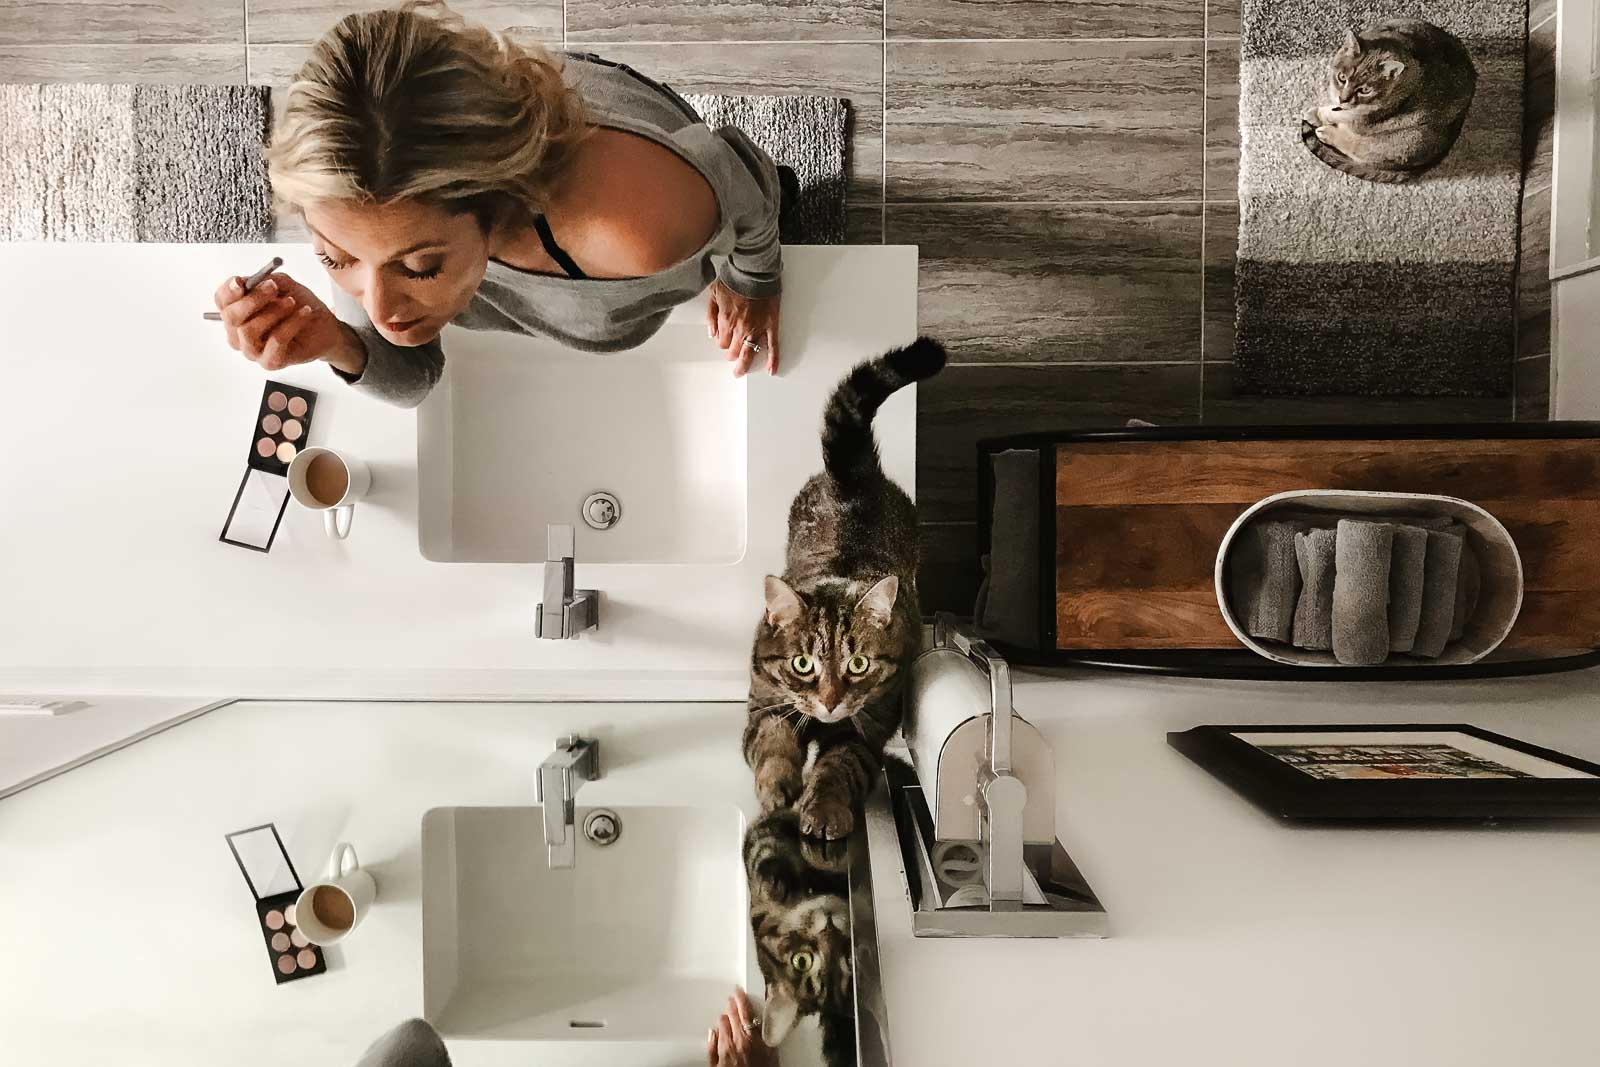 selfie from above of a woman putting on makeup at cat looks on